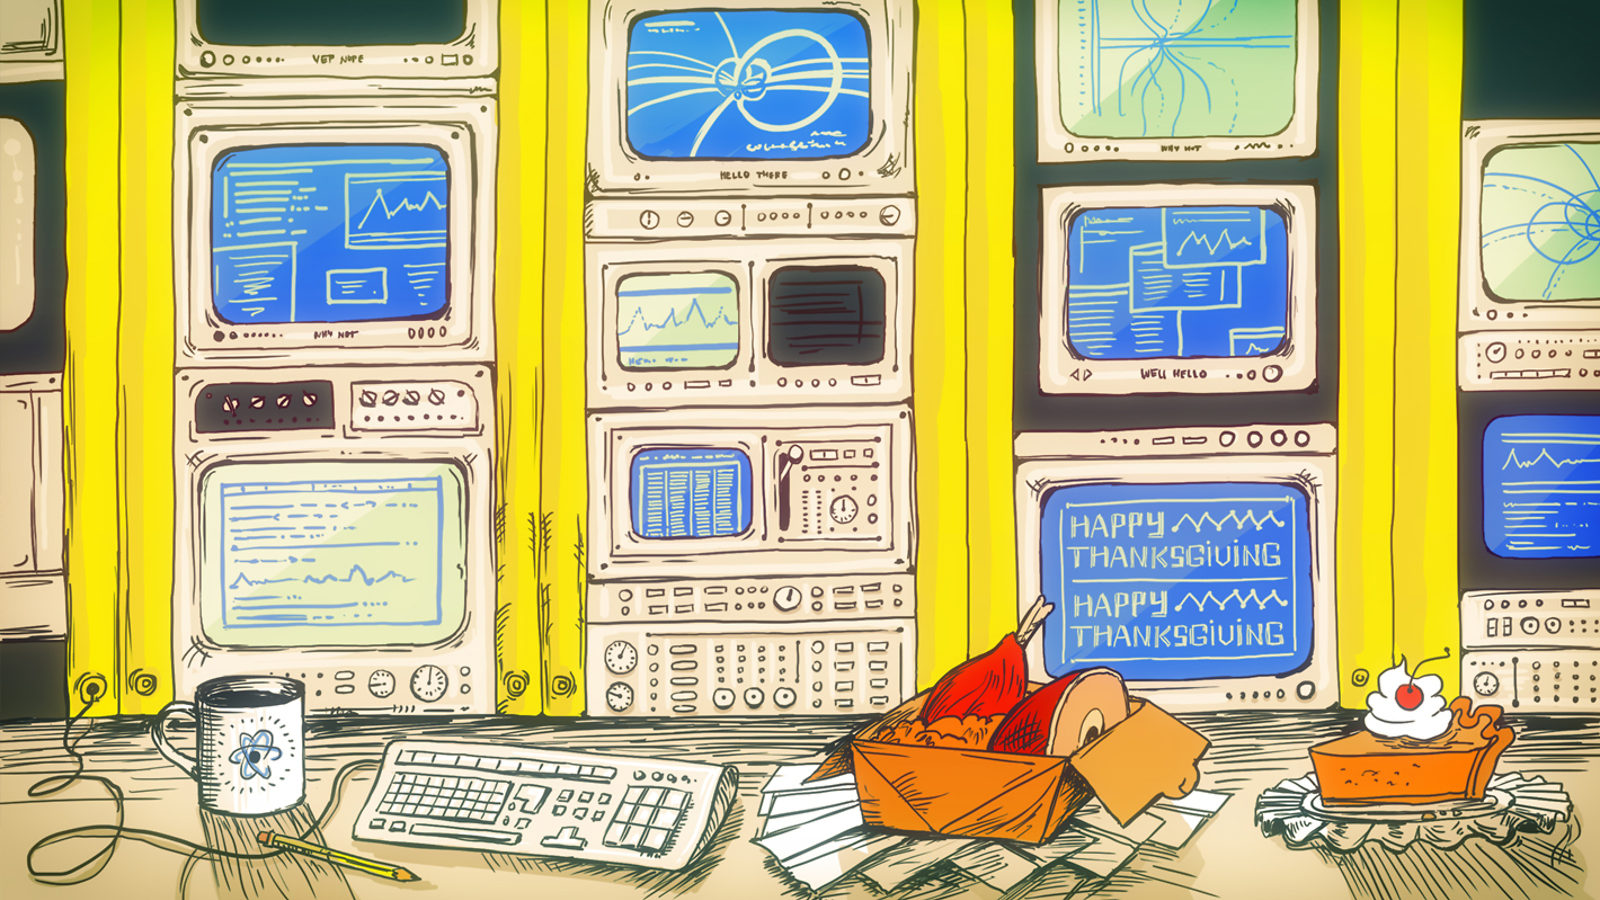 S2B:Thanksgiving in the Main Control Room illustration